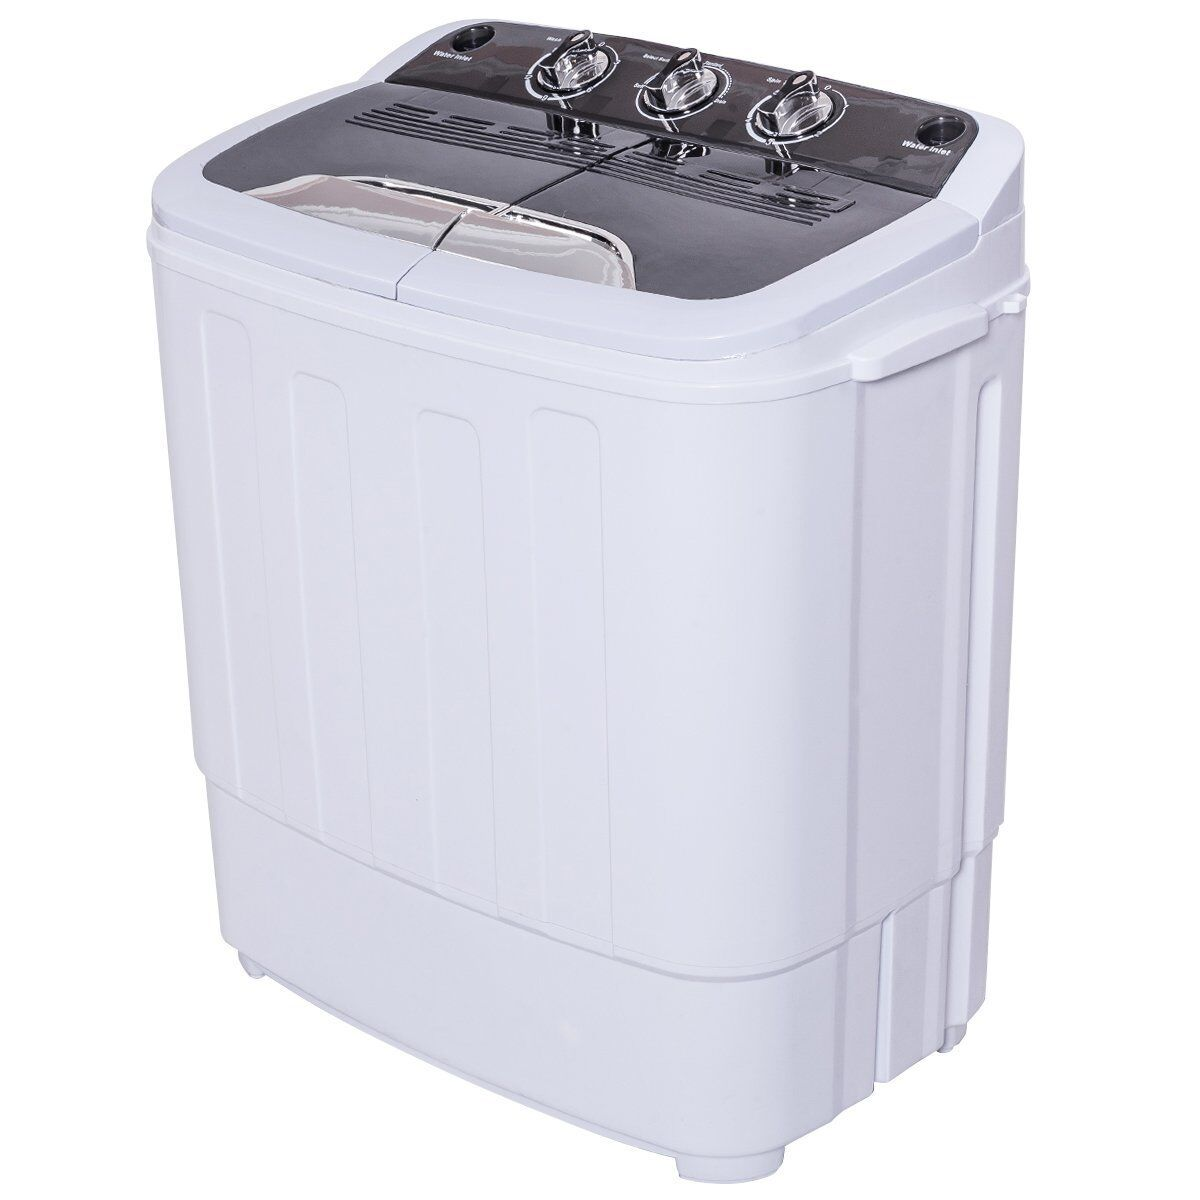 Apartment Size Washer Spin Dryer Clothes RV boat Machine Ele